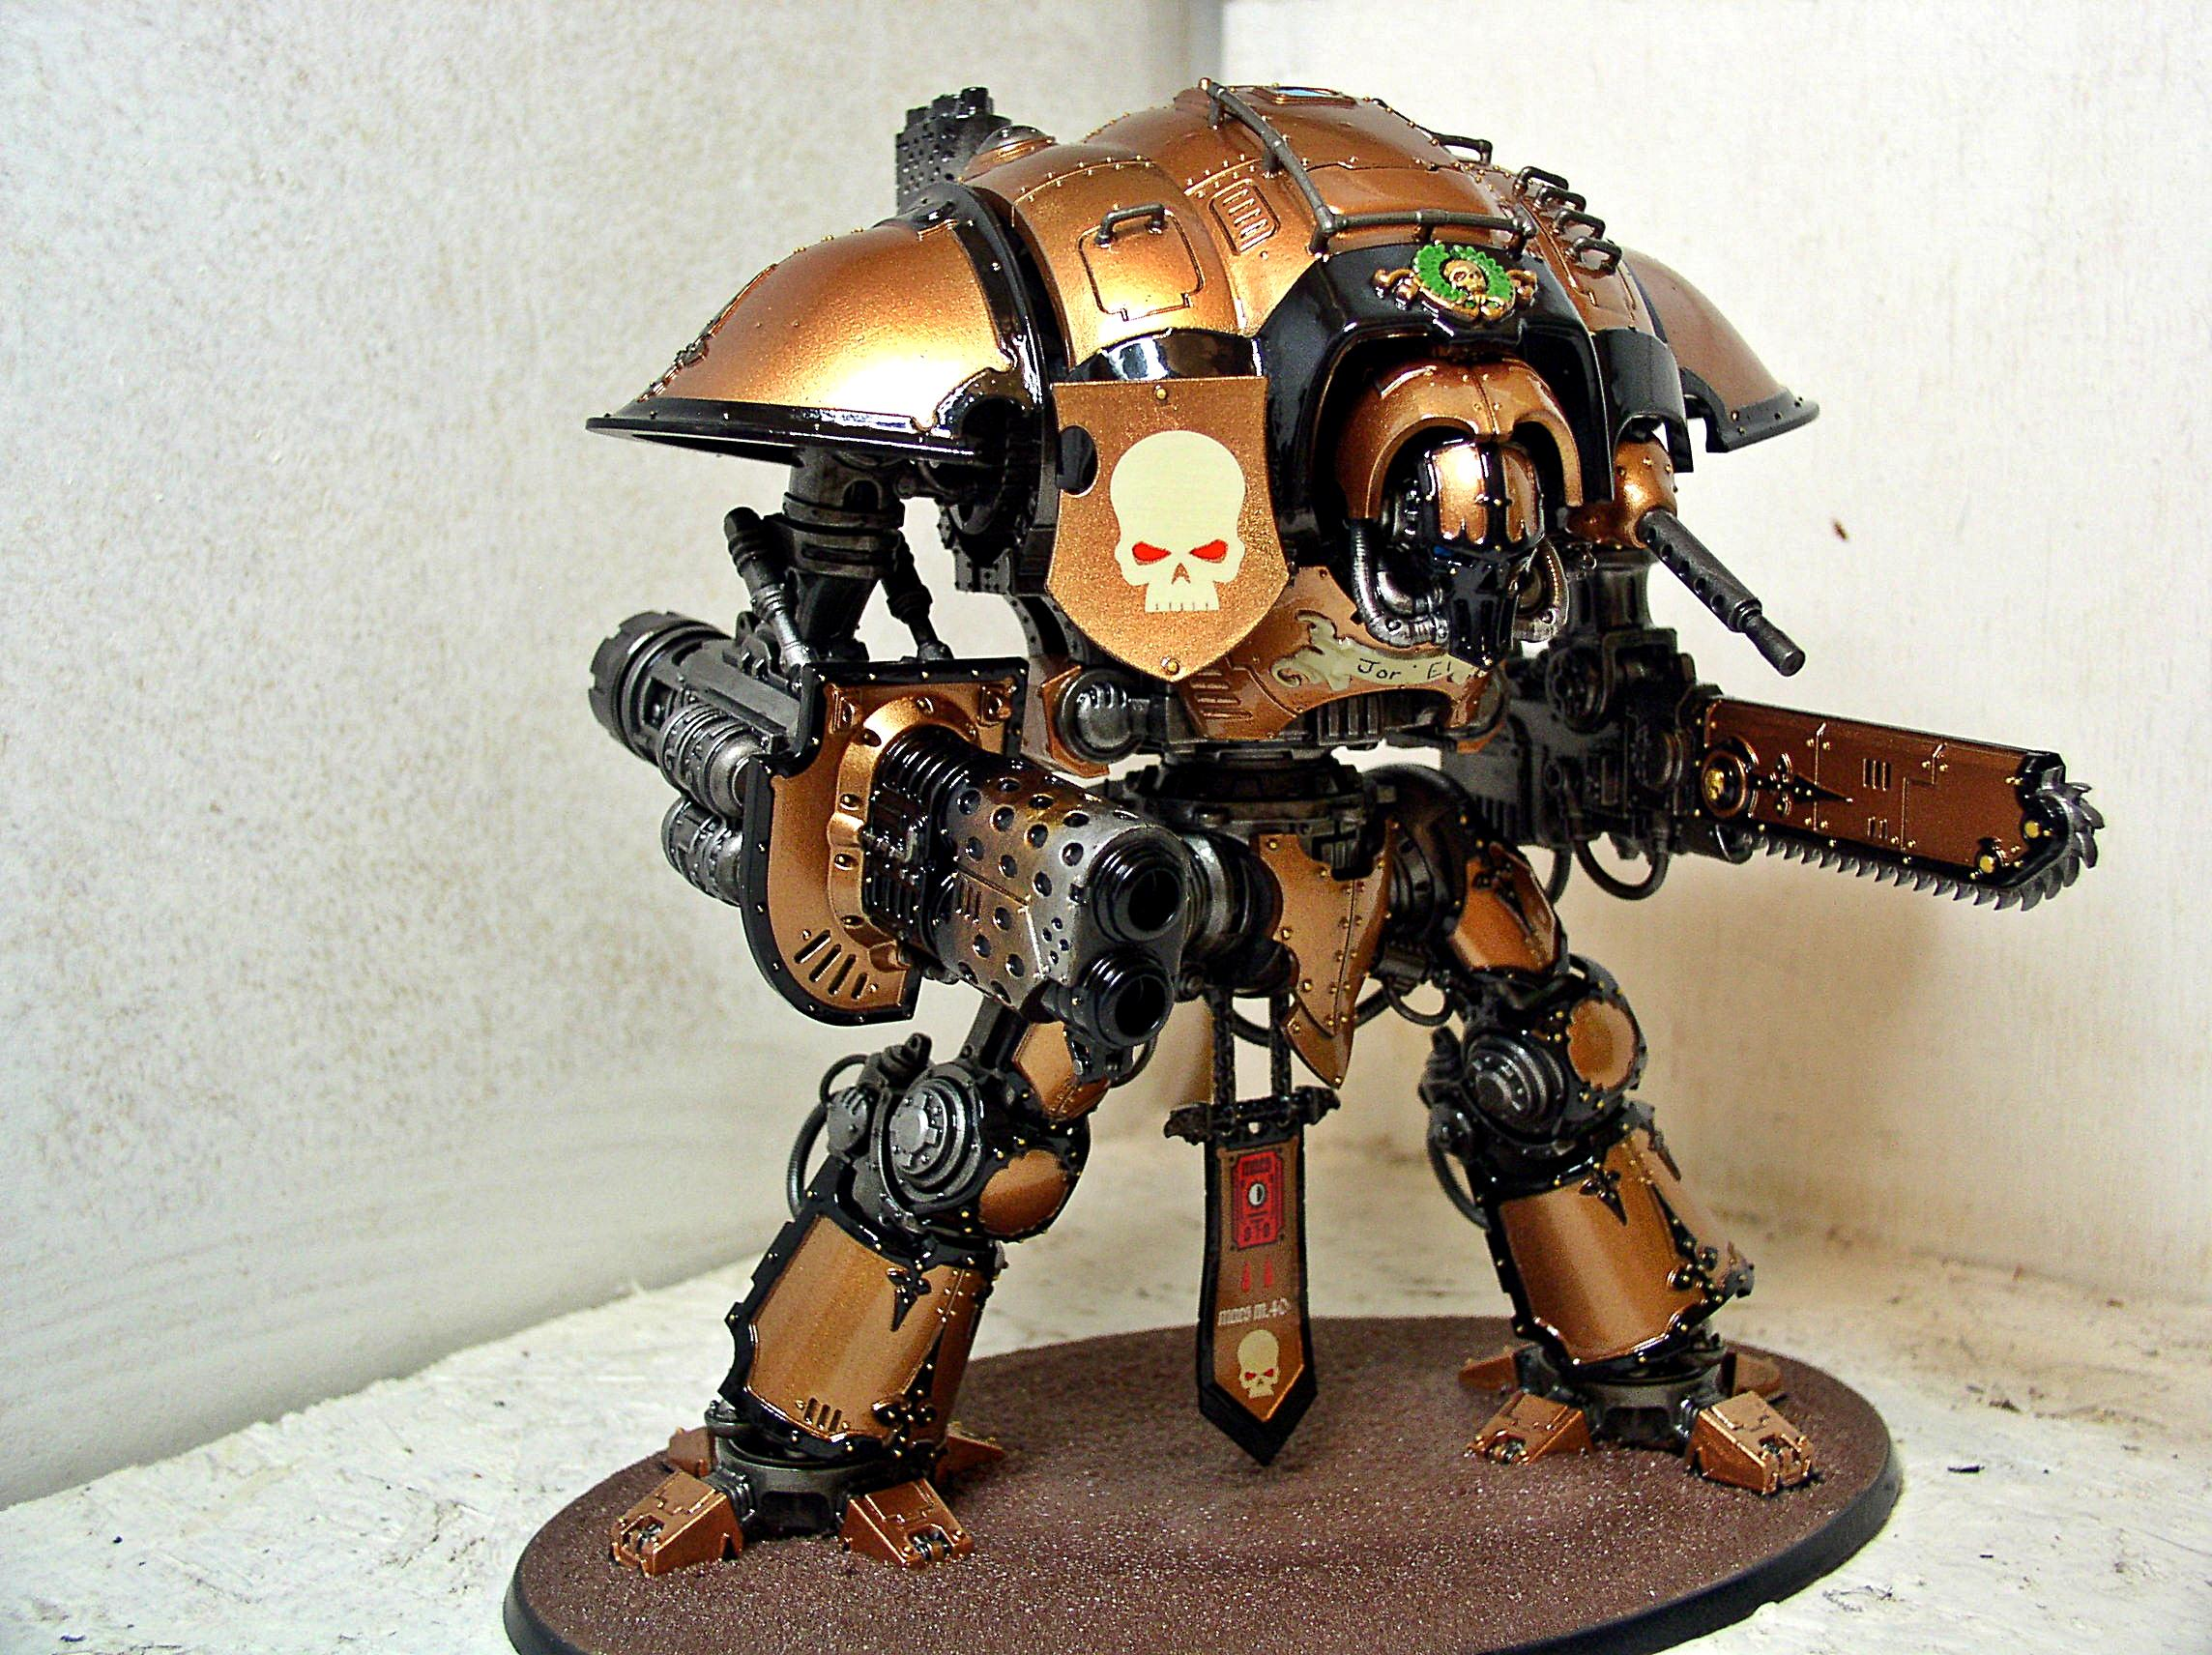 Bronze, Chainsword, Imperial Knight, Knights, Metallic